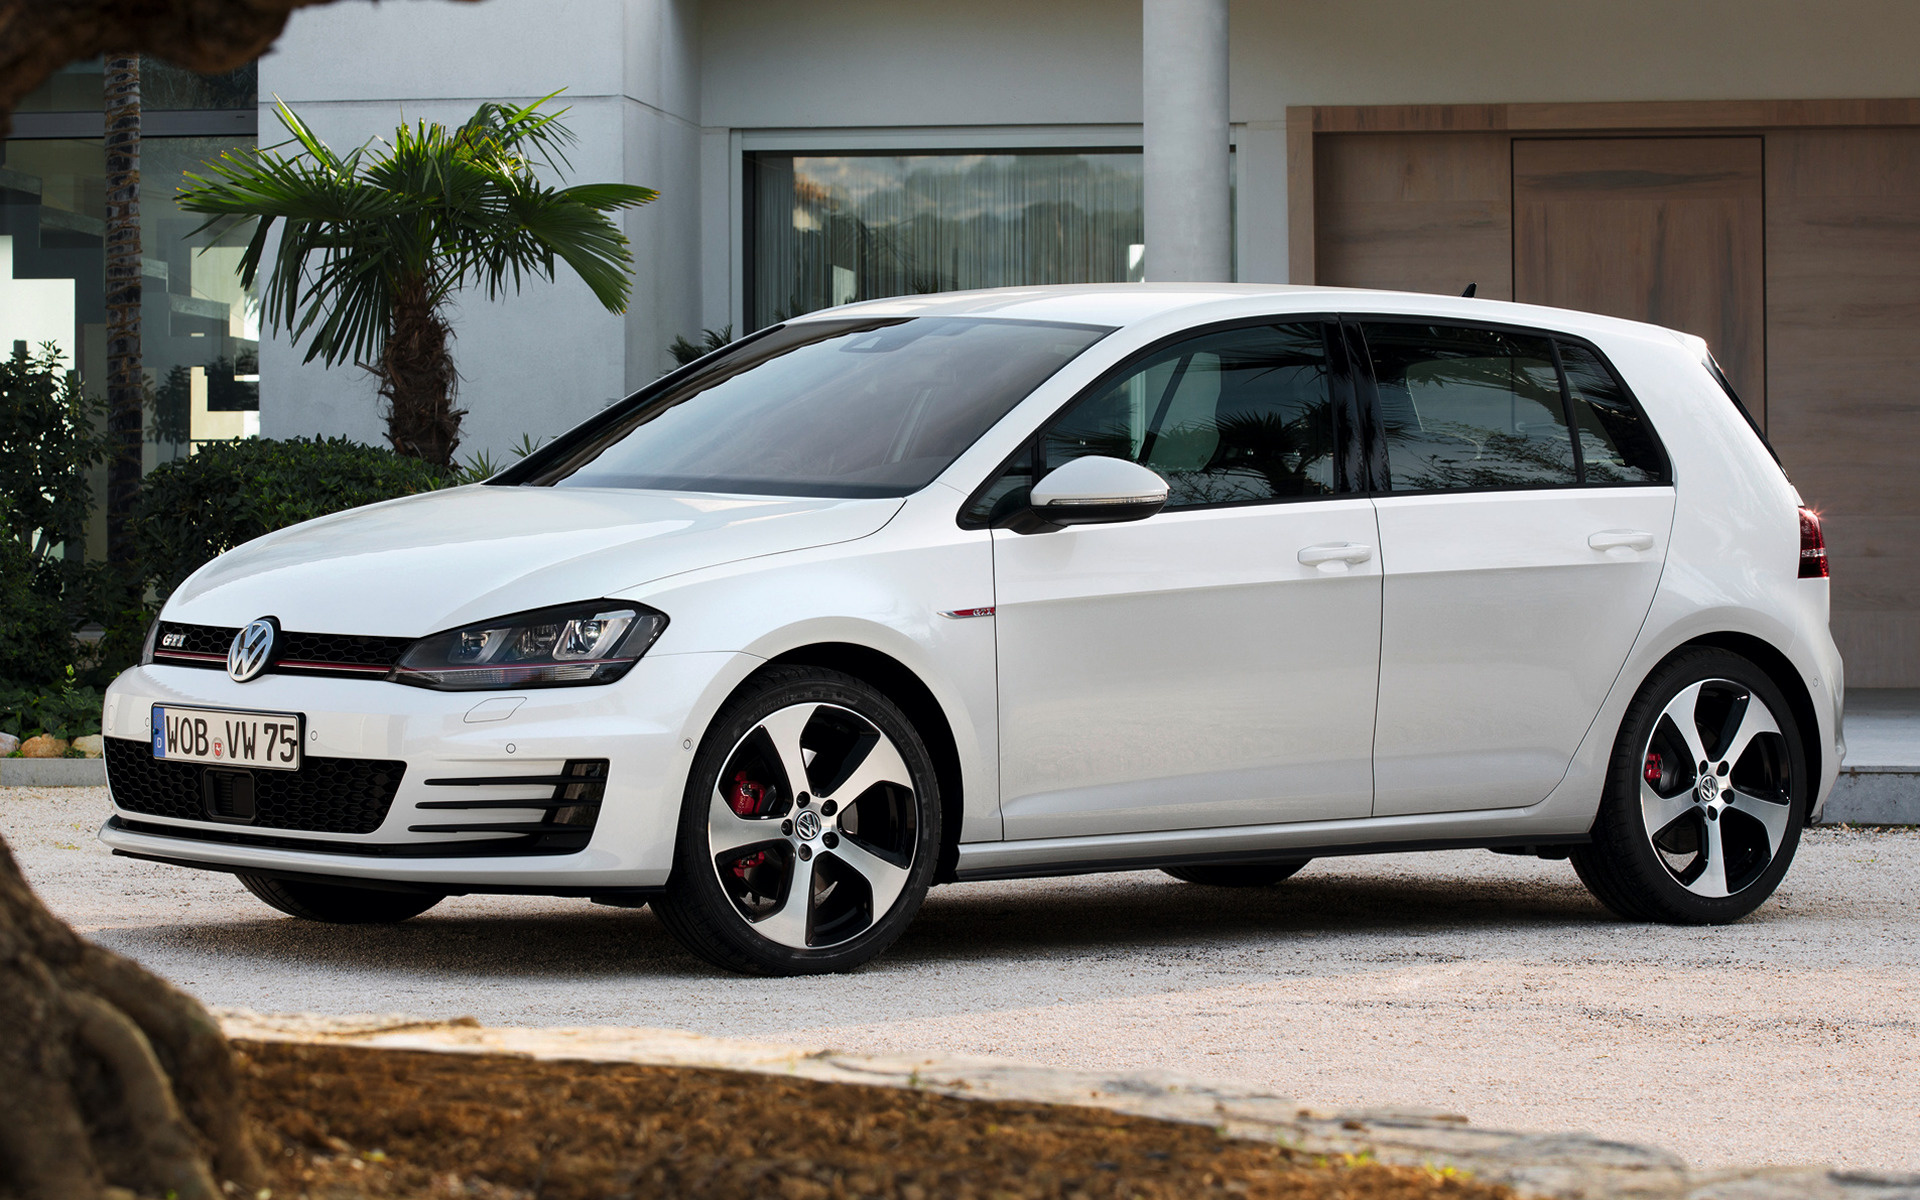 2019 Volkswagen Golf GTI 5 door photo - 4